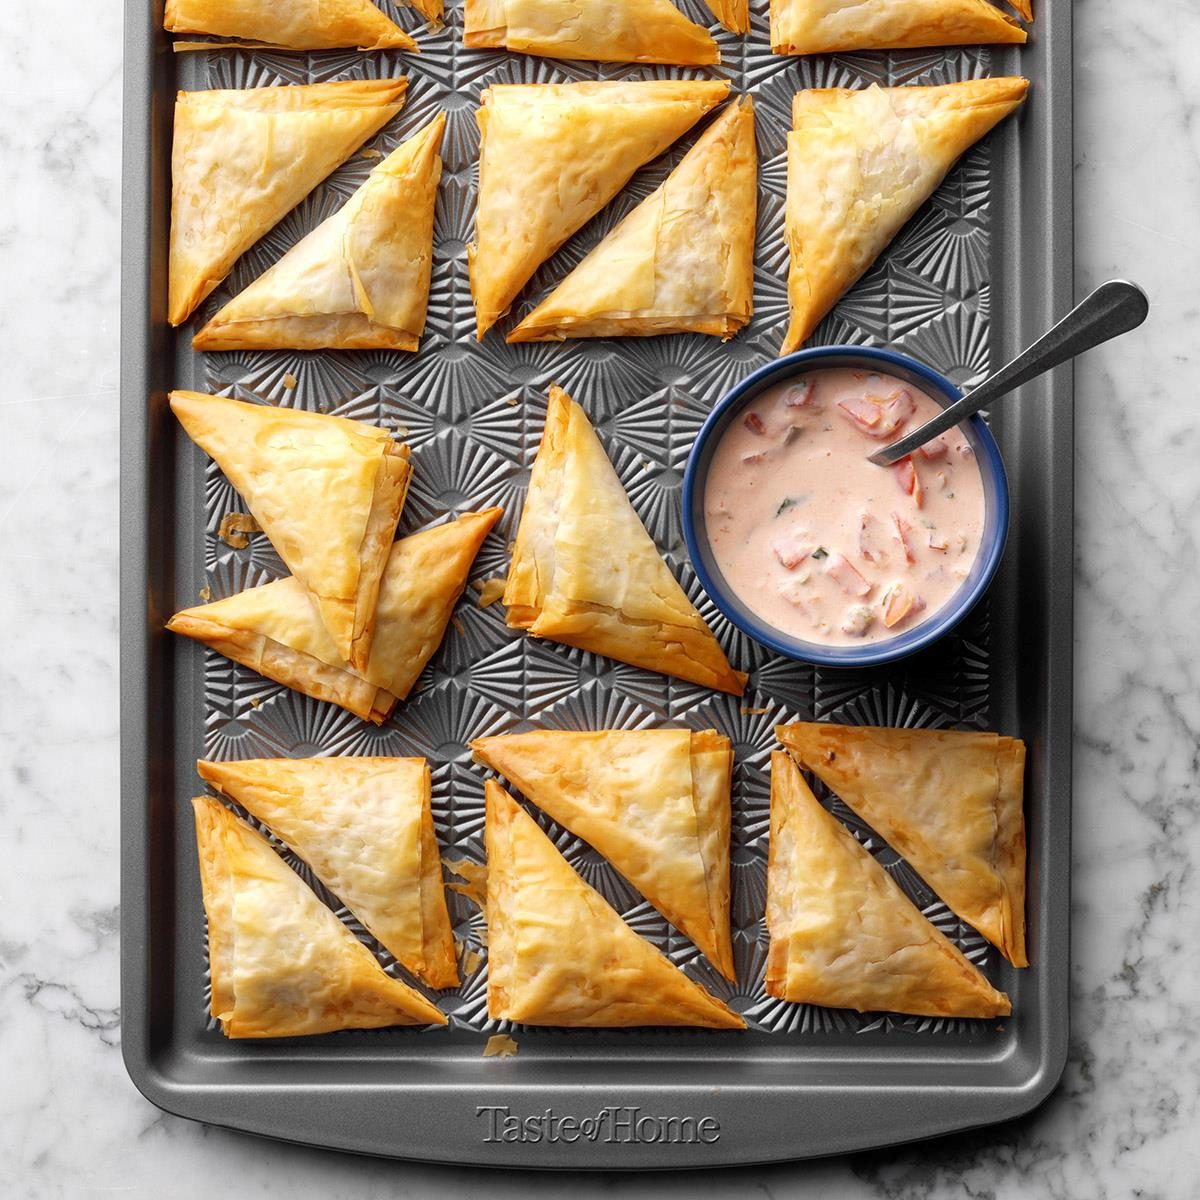 50+ Cooking Projects to Help Pass the Time